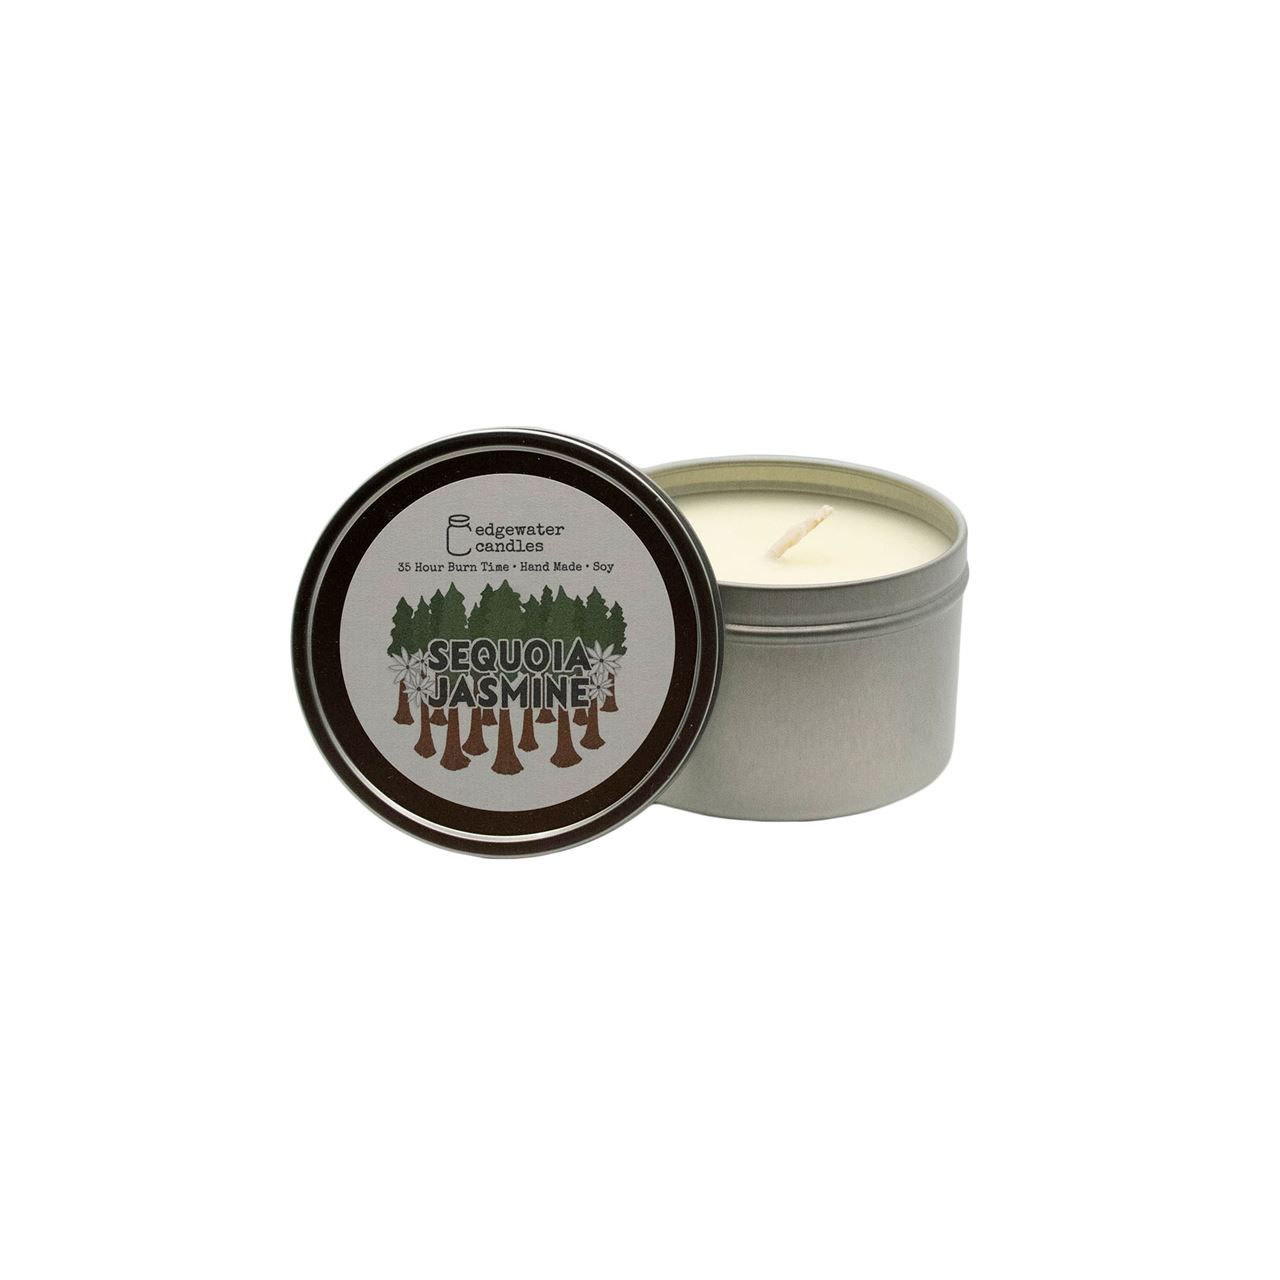 Sequoia Jasmine Travel Tin by Edgewater Candles